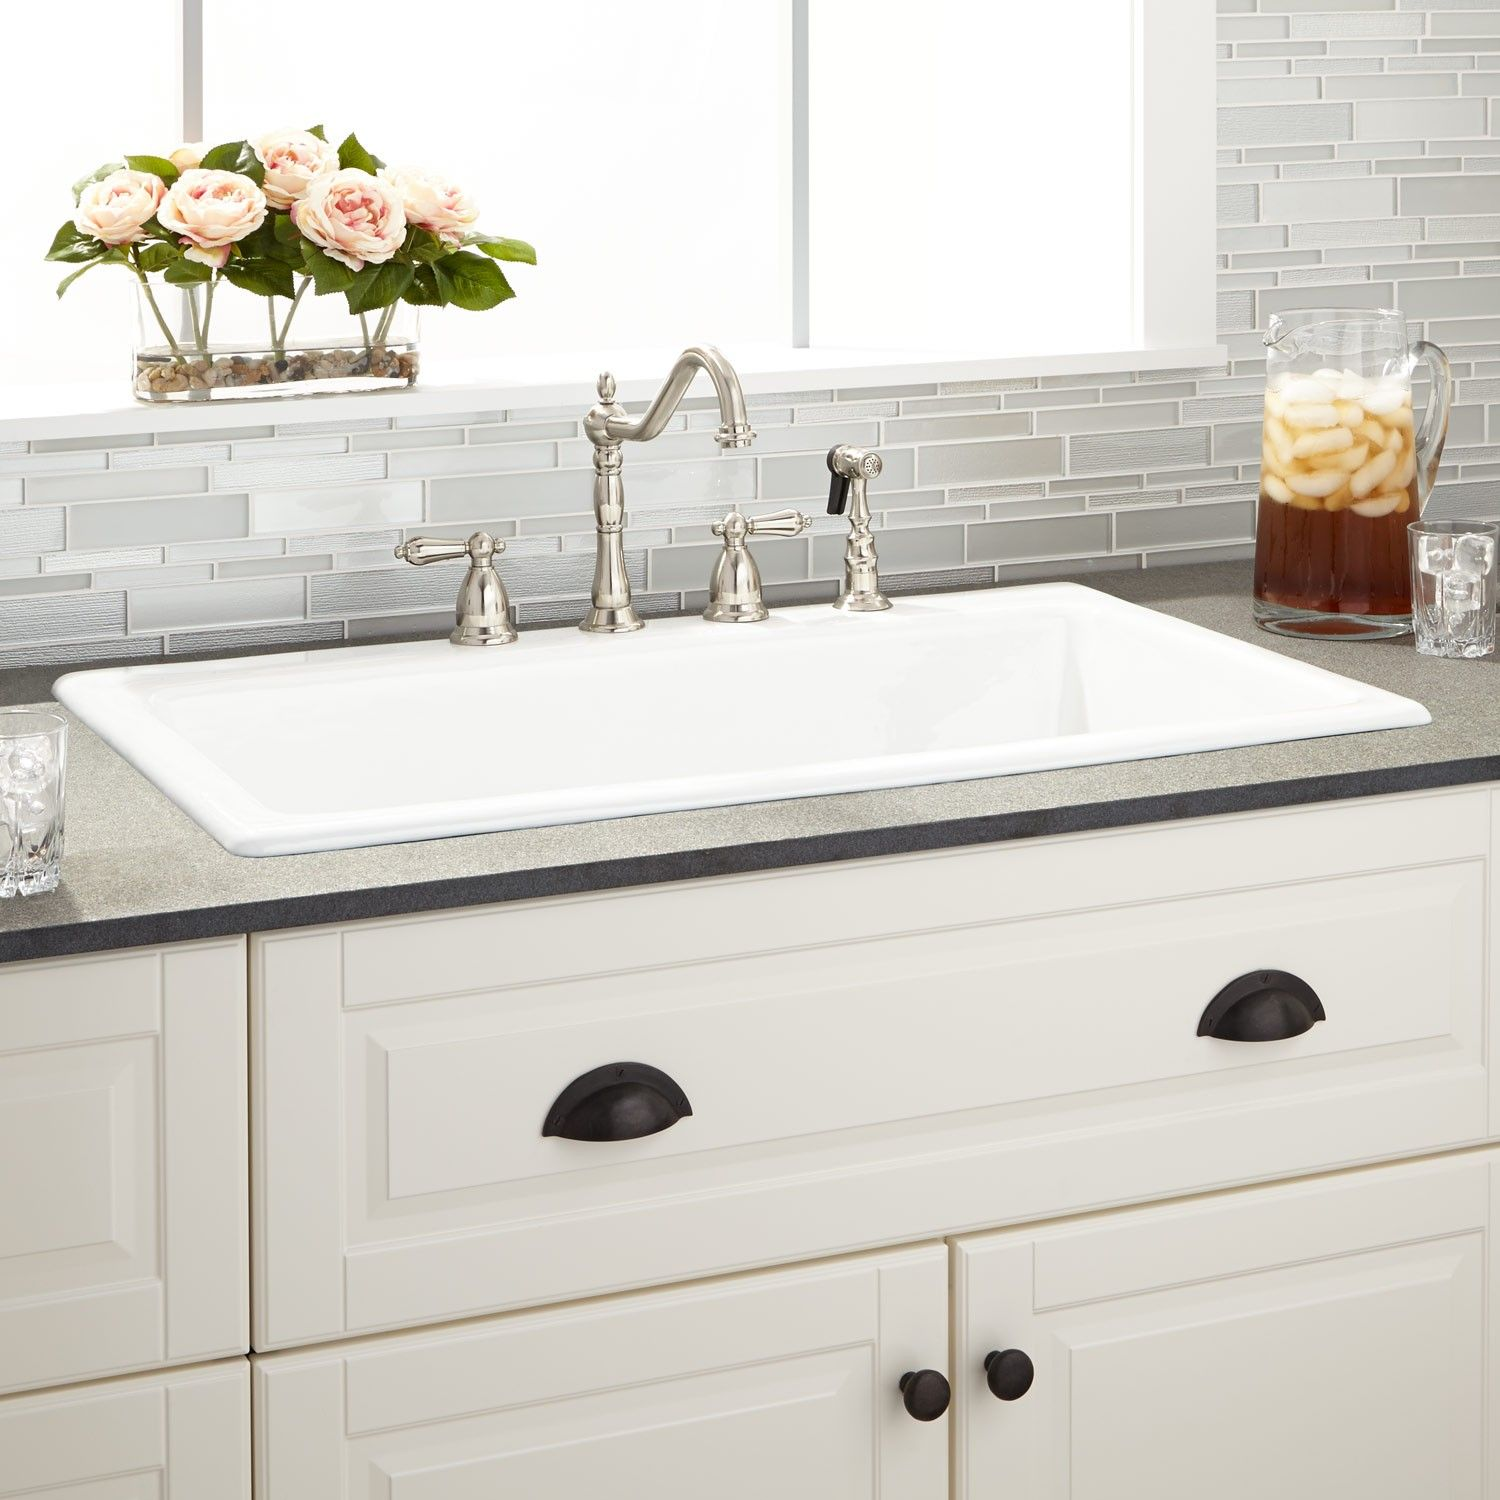 White Kitchen Sink Tall Pantry 36 Quot Frattina Cast Iron Drop In 8 3 4